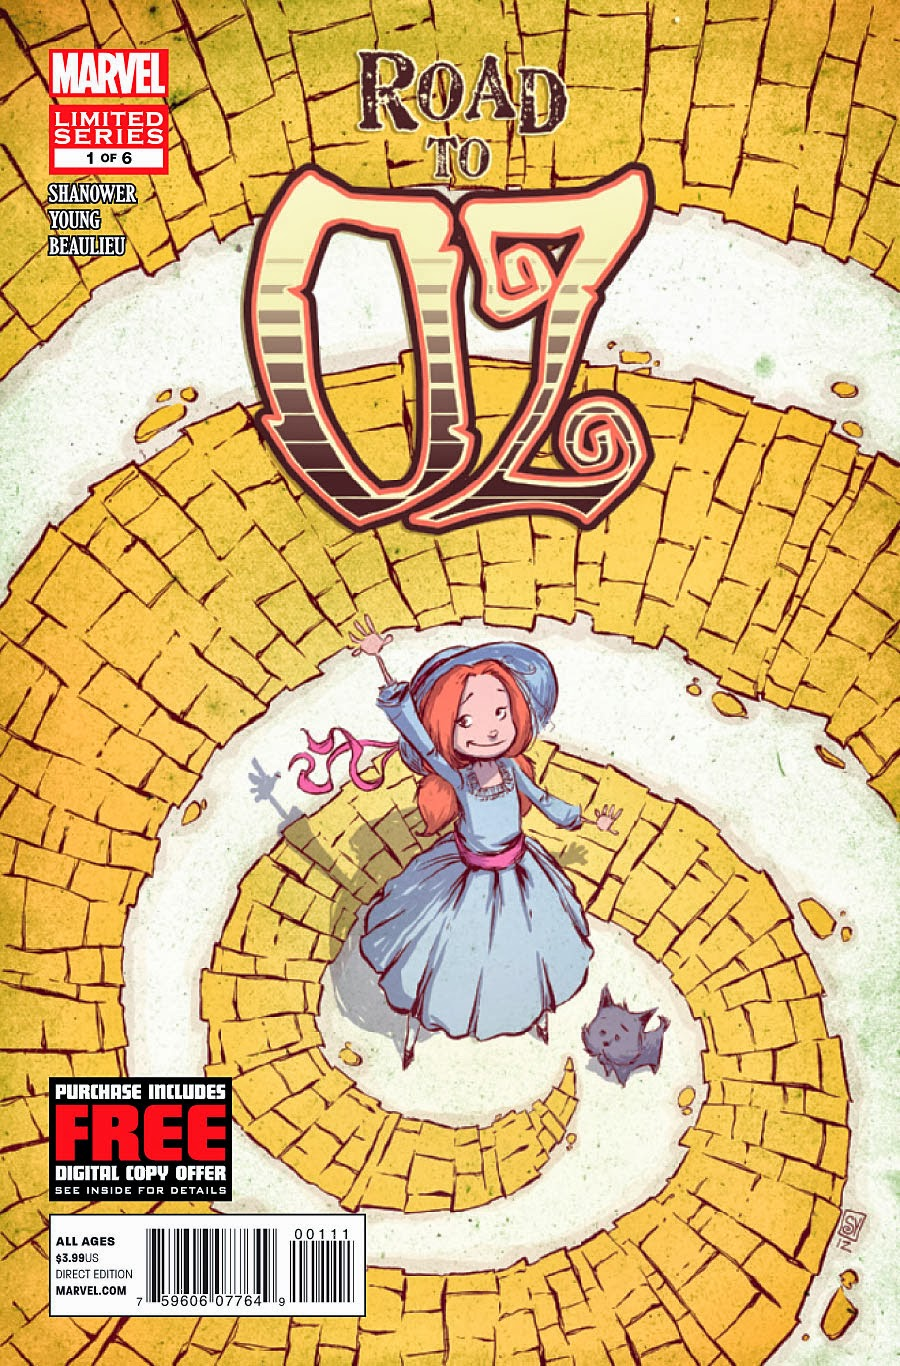 Review: OZ: Road to OZ